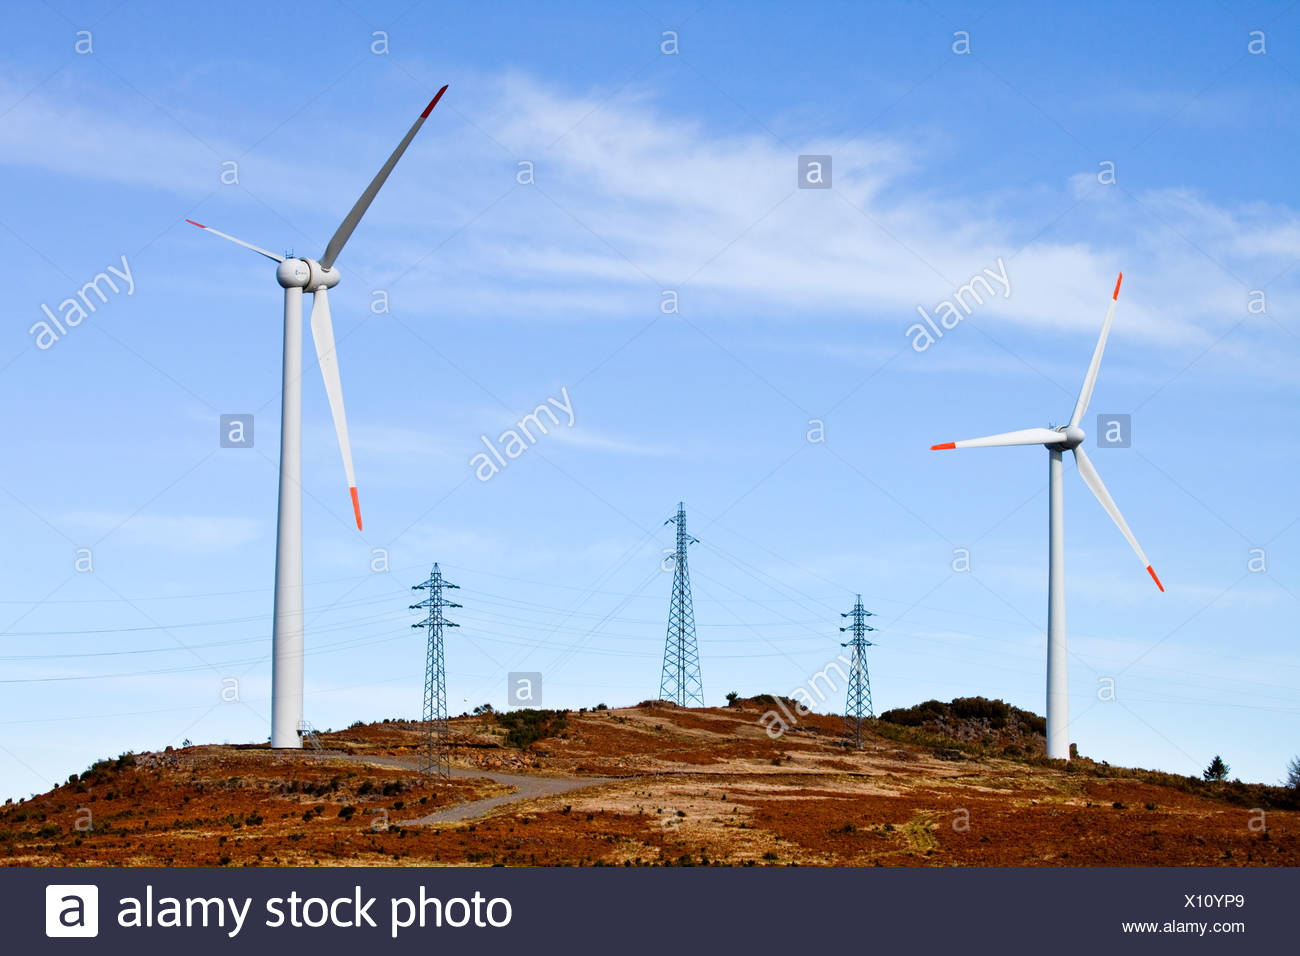 Wind turbines and electricity pylons on the Paul da Serra plateau, Madeira, Portugal, Europe - Stock Image